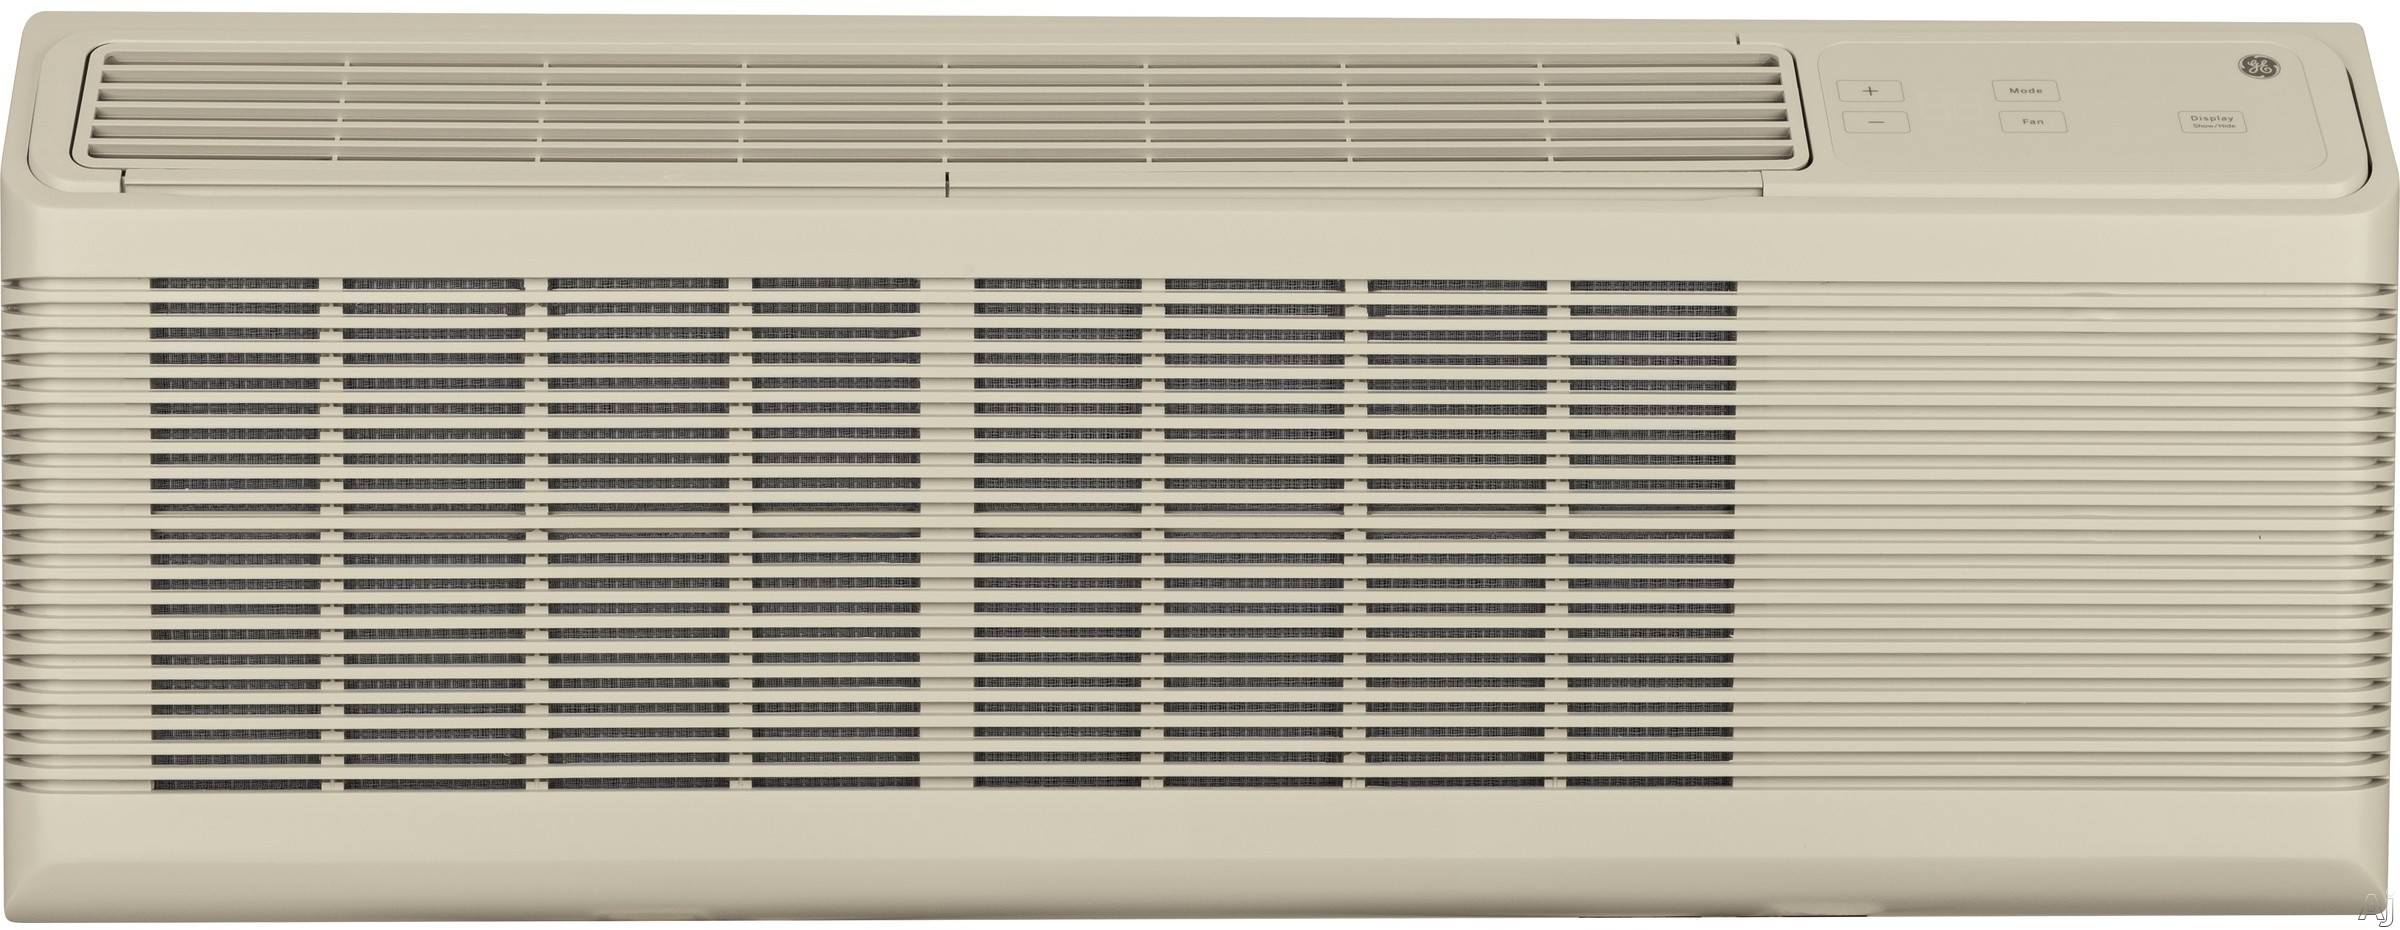 GE Zoneline AZ65H12DAC 11,900 BTU Packaged Terminal Air Conditioner with 10,400 BTU Heat Pump and Electric Heat Backup, 11.7 EER, 3.7 Pints Per Hour Dehumidification, Corrosion Protection, R410A Refrigerant and 230/208 Volt AZ65H12DAC